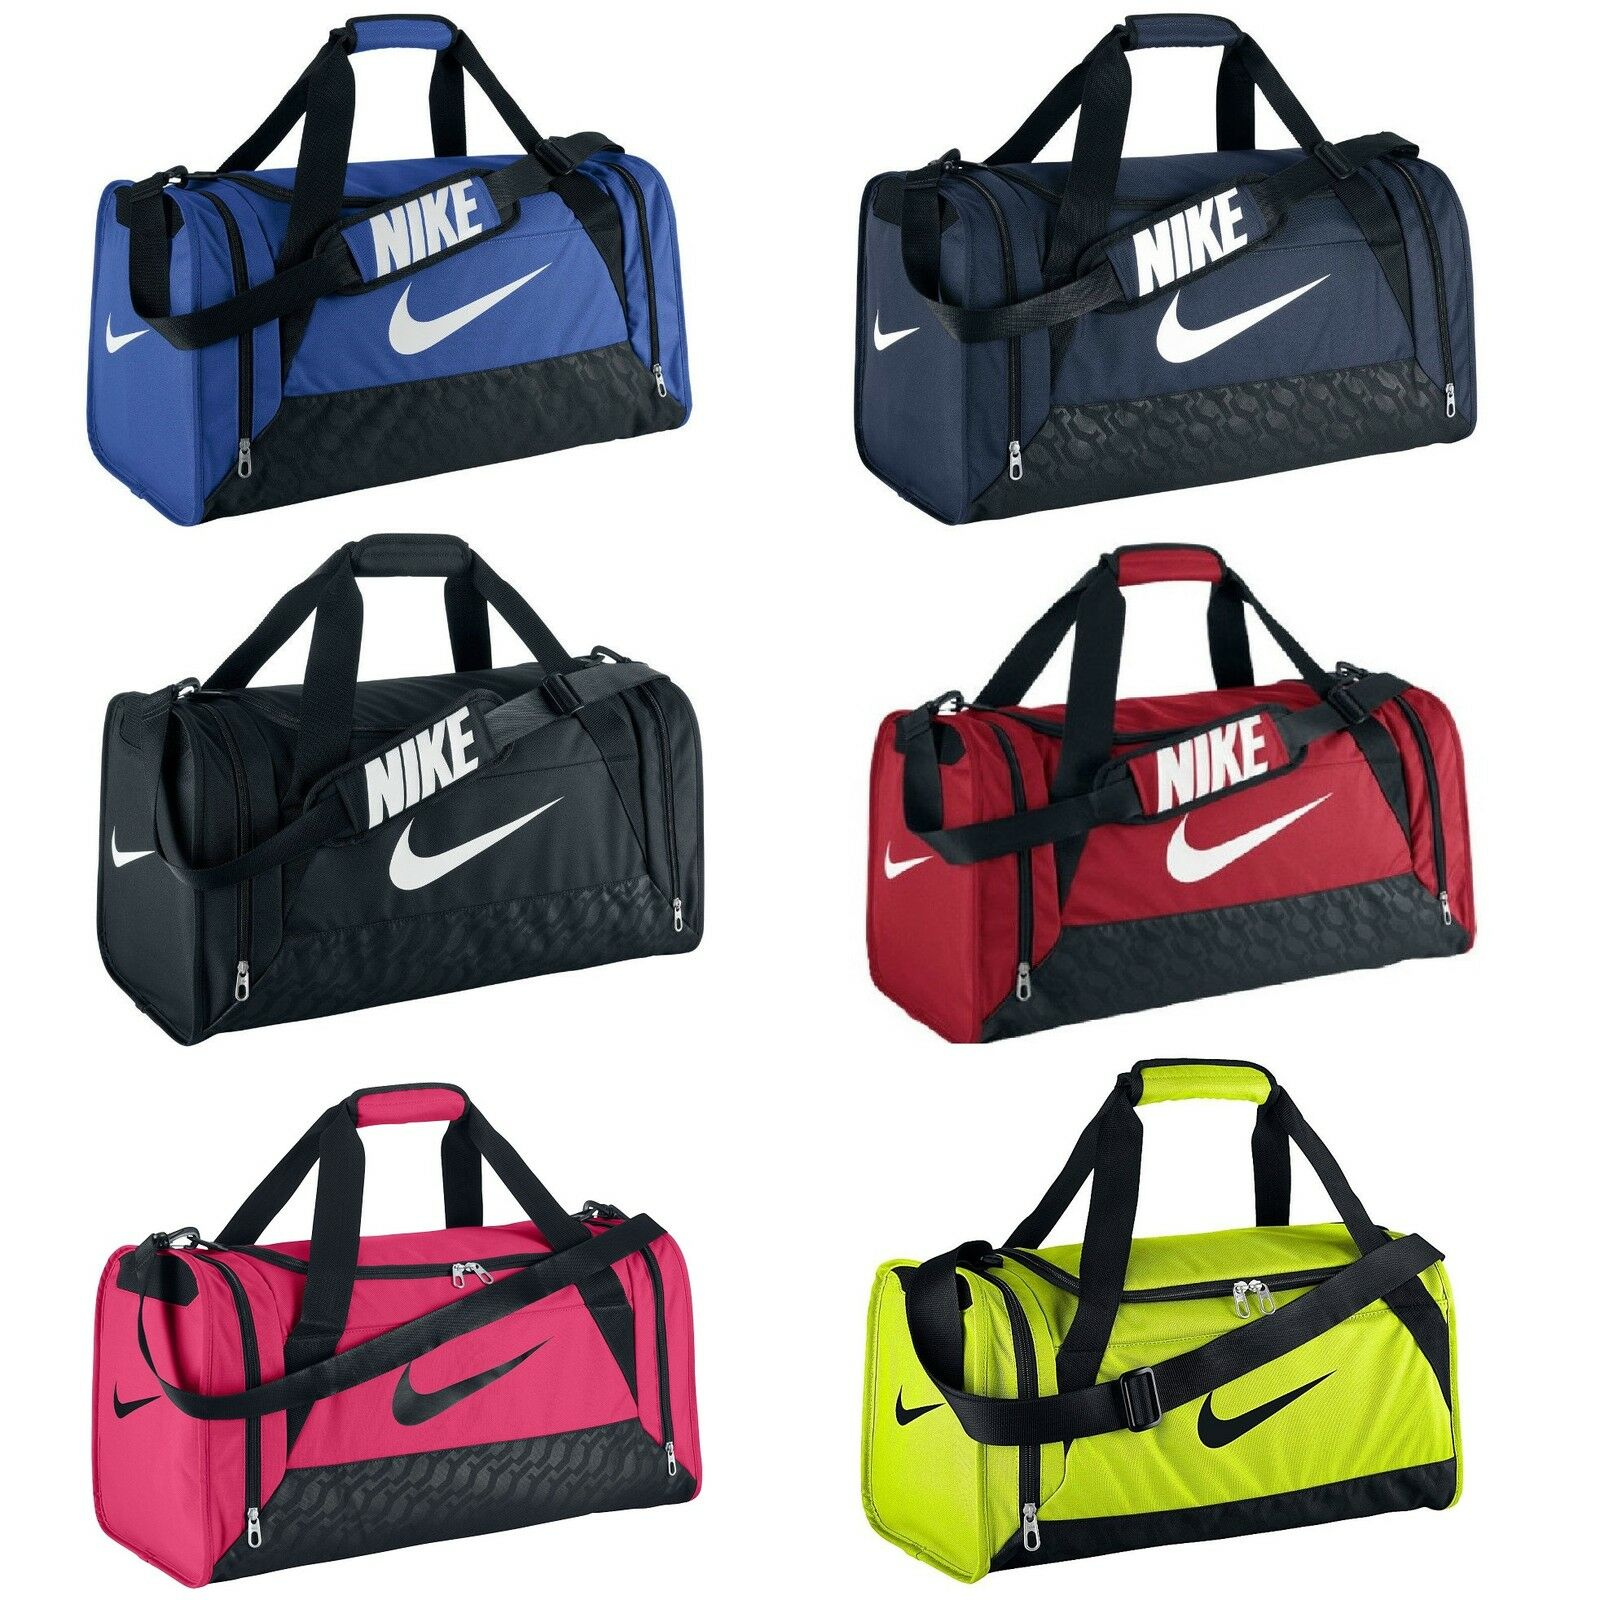 nike brasilia 6 duffle bag team training sports holdall gym travel kit ebay. Black Bedroom Furniture Sets. Home Design Ideas